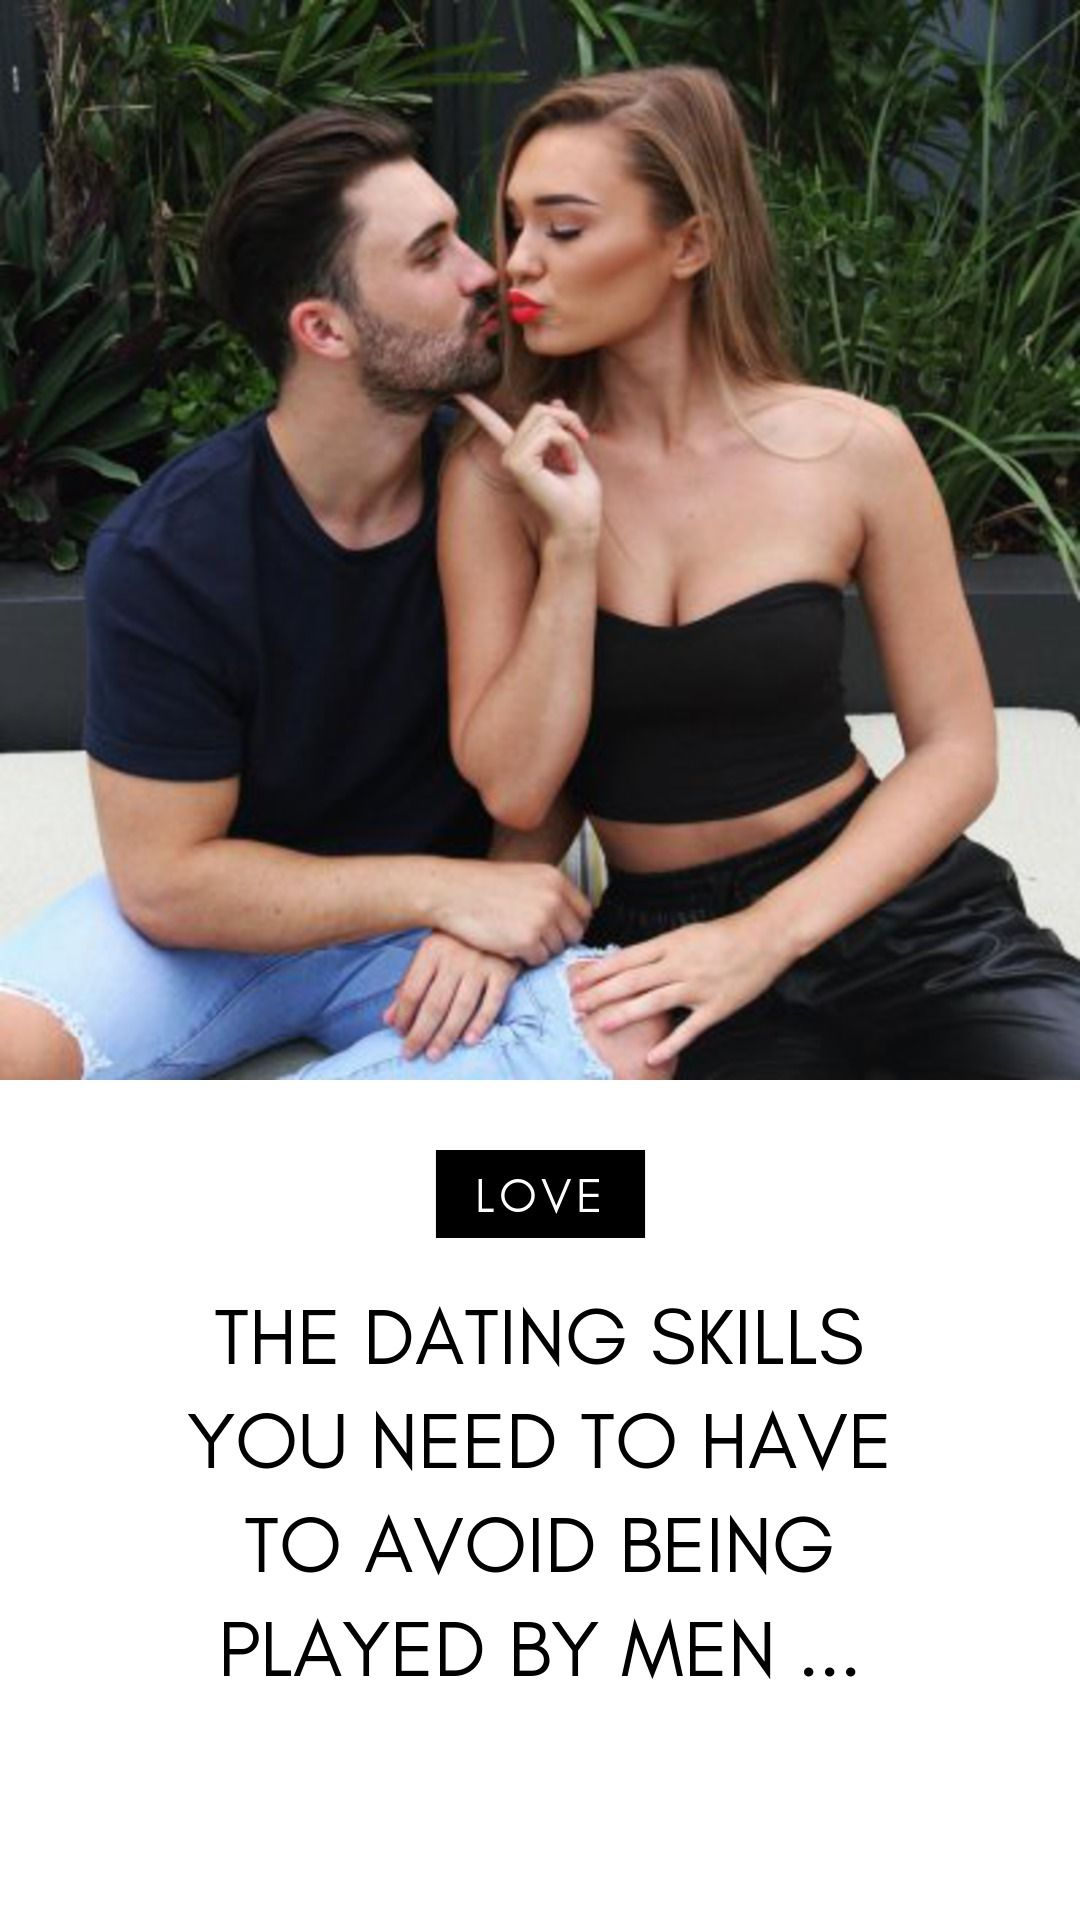 avoid dating players